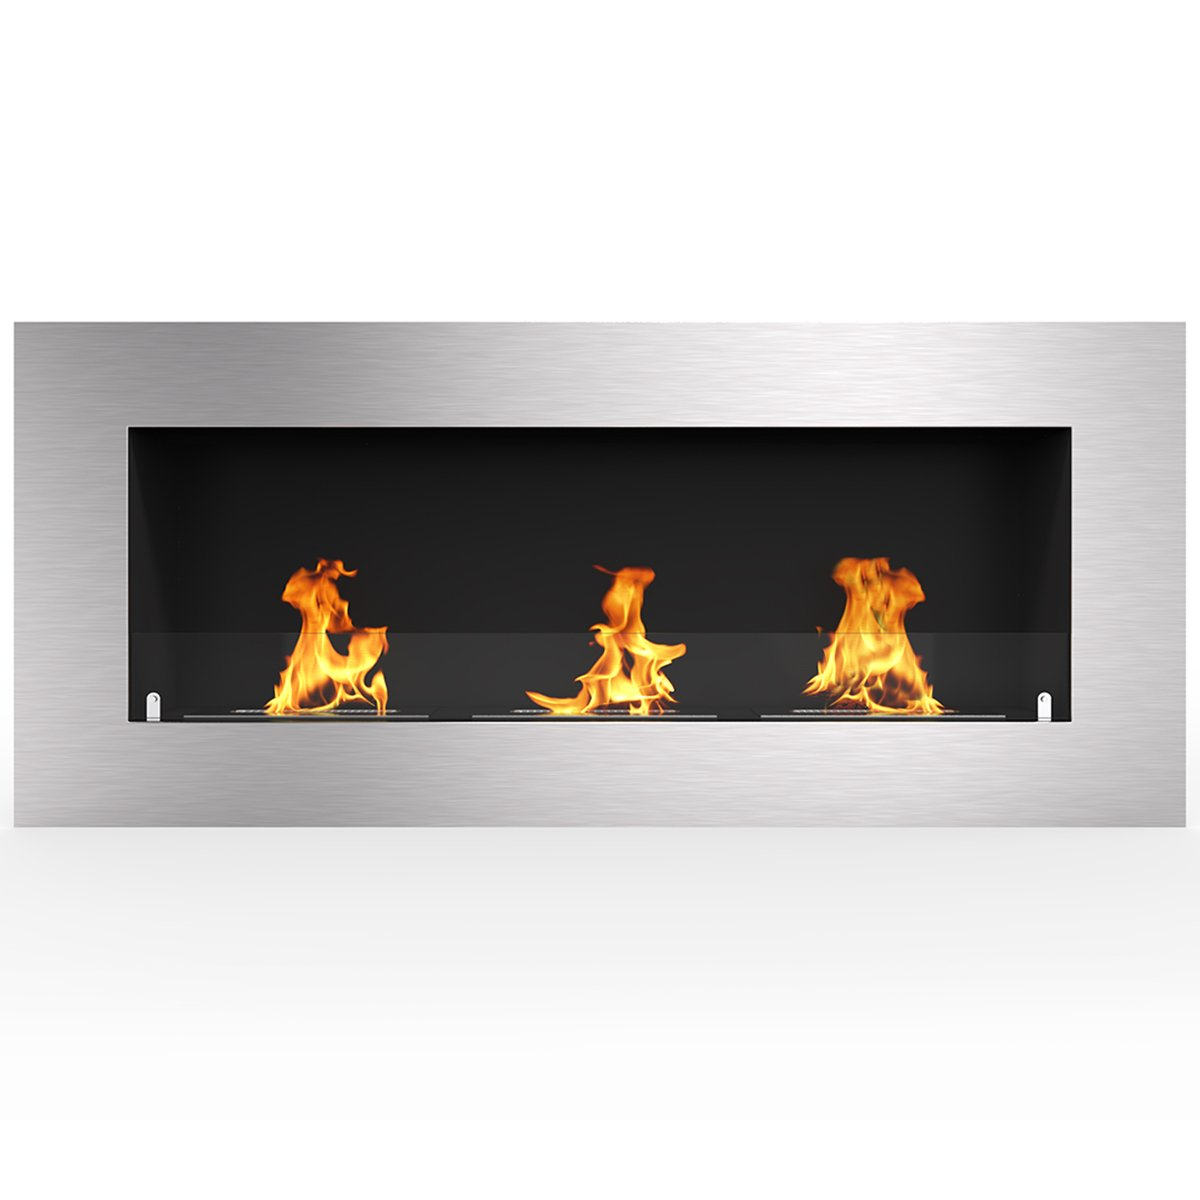 Regal Flame Warren 50'' PRO Ventless Built In Wall Recessed Bio Ethanol Wall Mounted Fireplace Similar Electric Fireplaces, Gas Logs, Fireplace Inserts, Log Sets, Gas Fireplaces, Space Heaters, Propane by Regal Flame